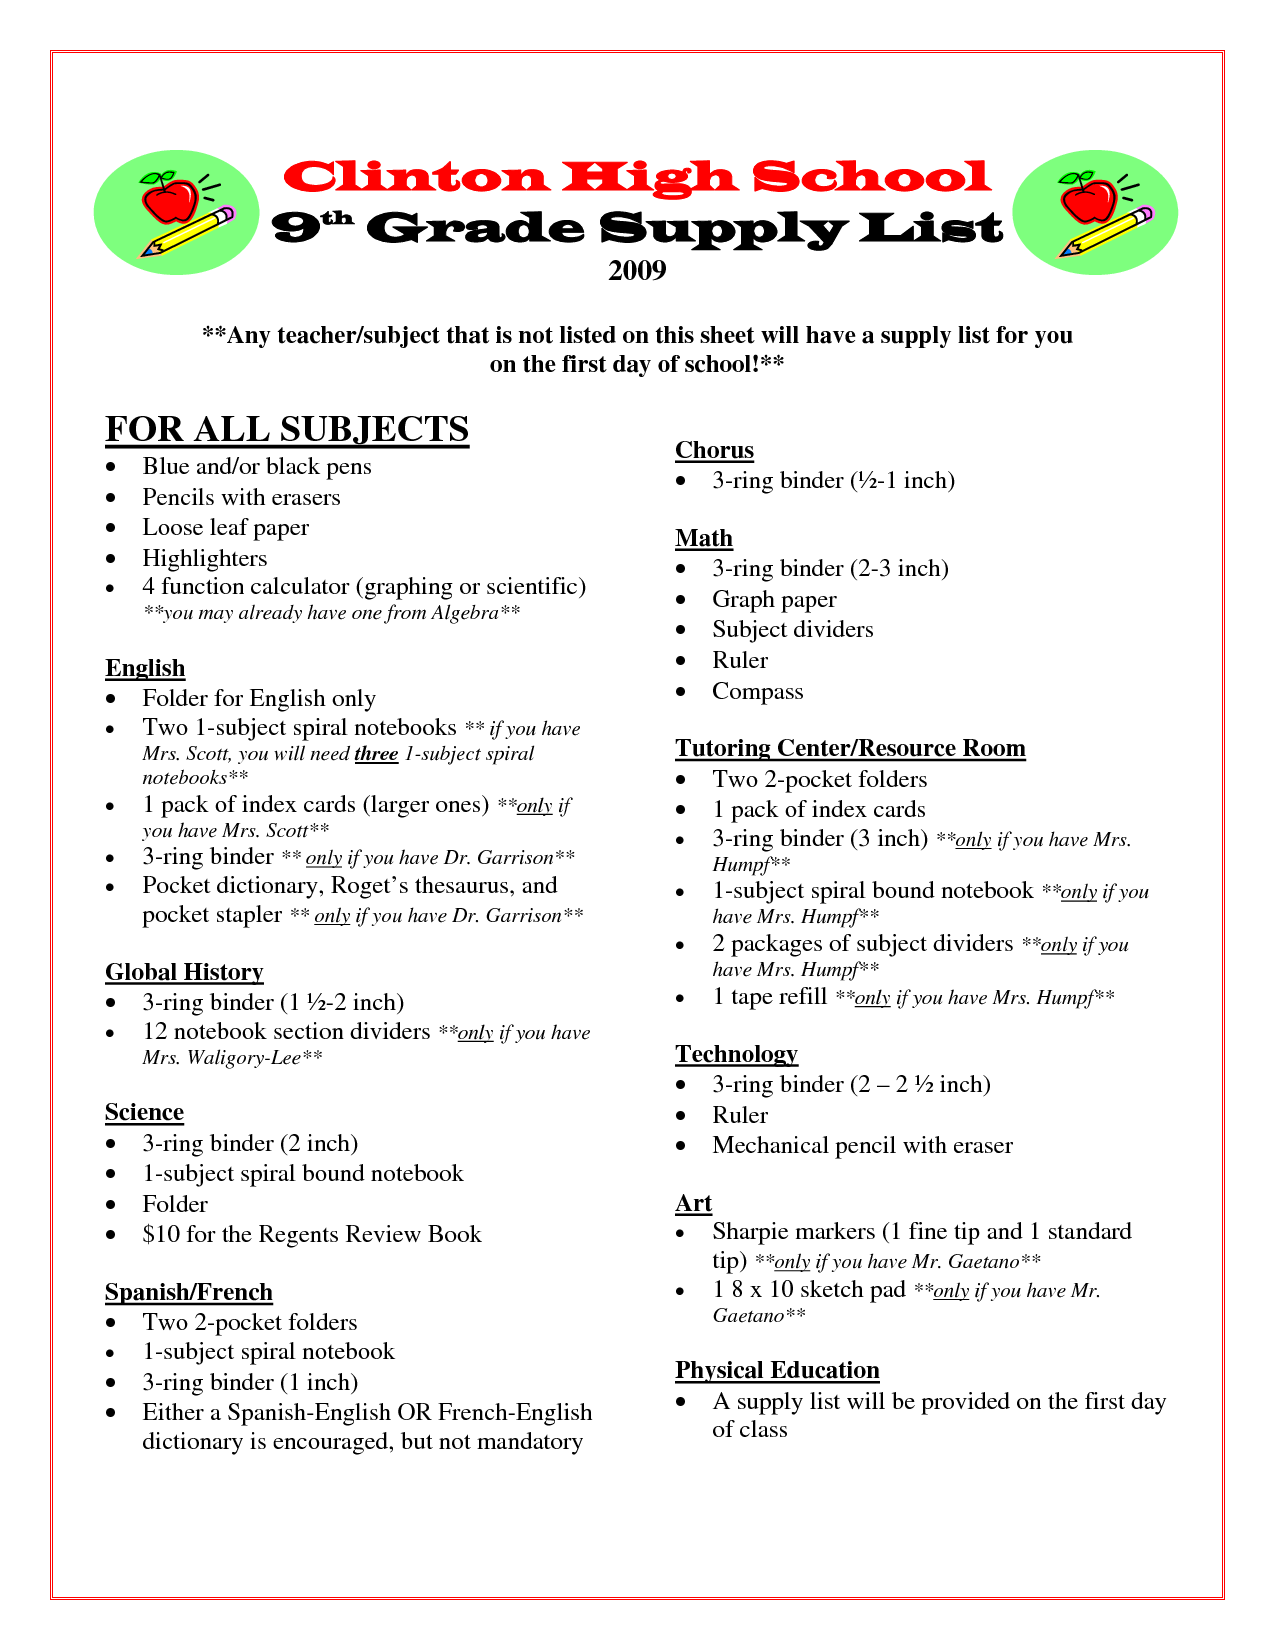 School Supplies List 9th Grade